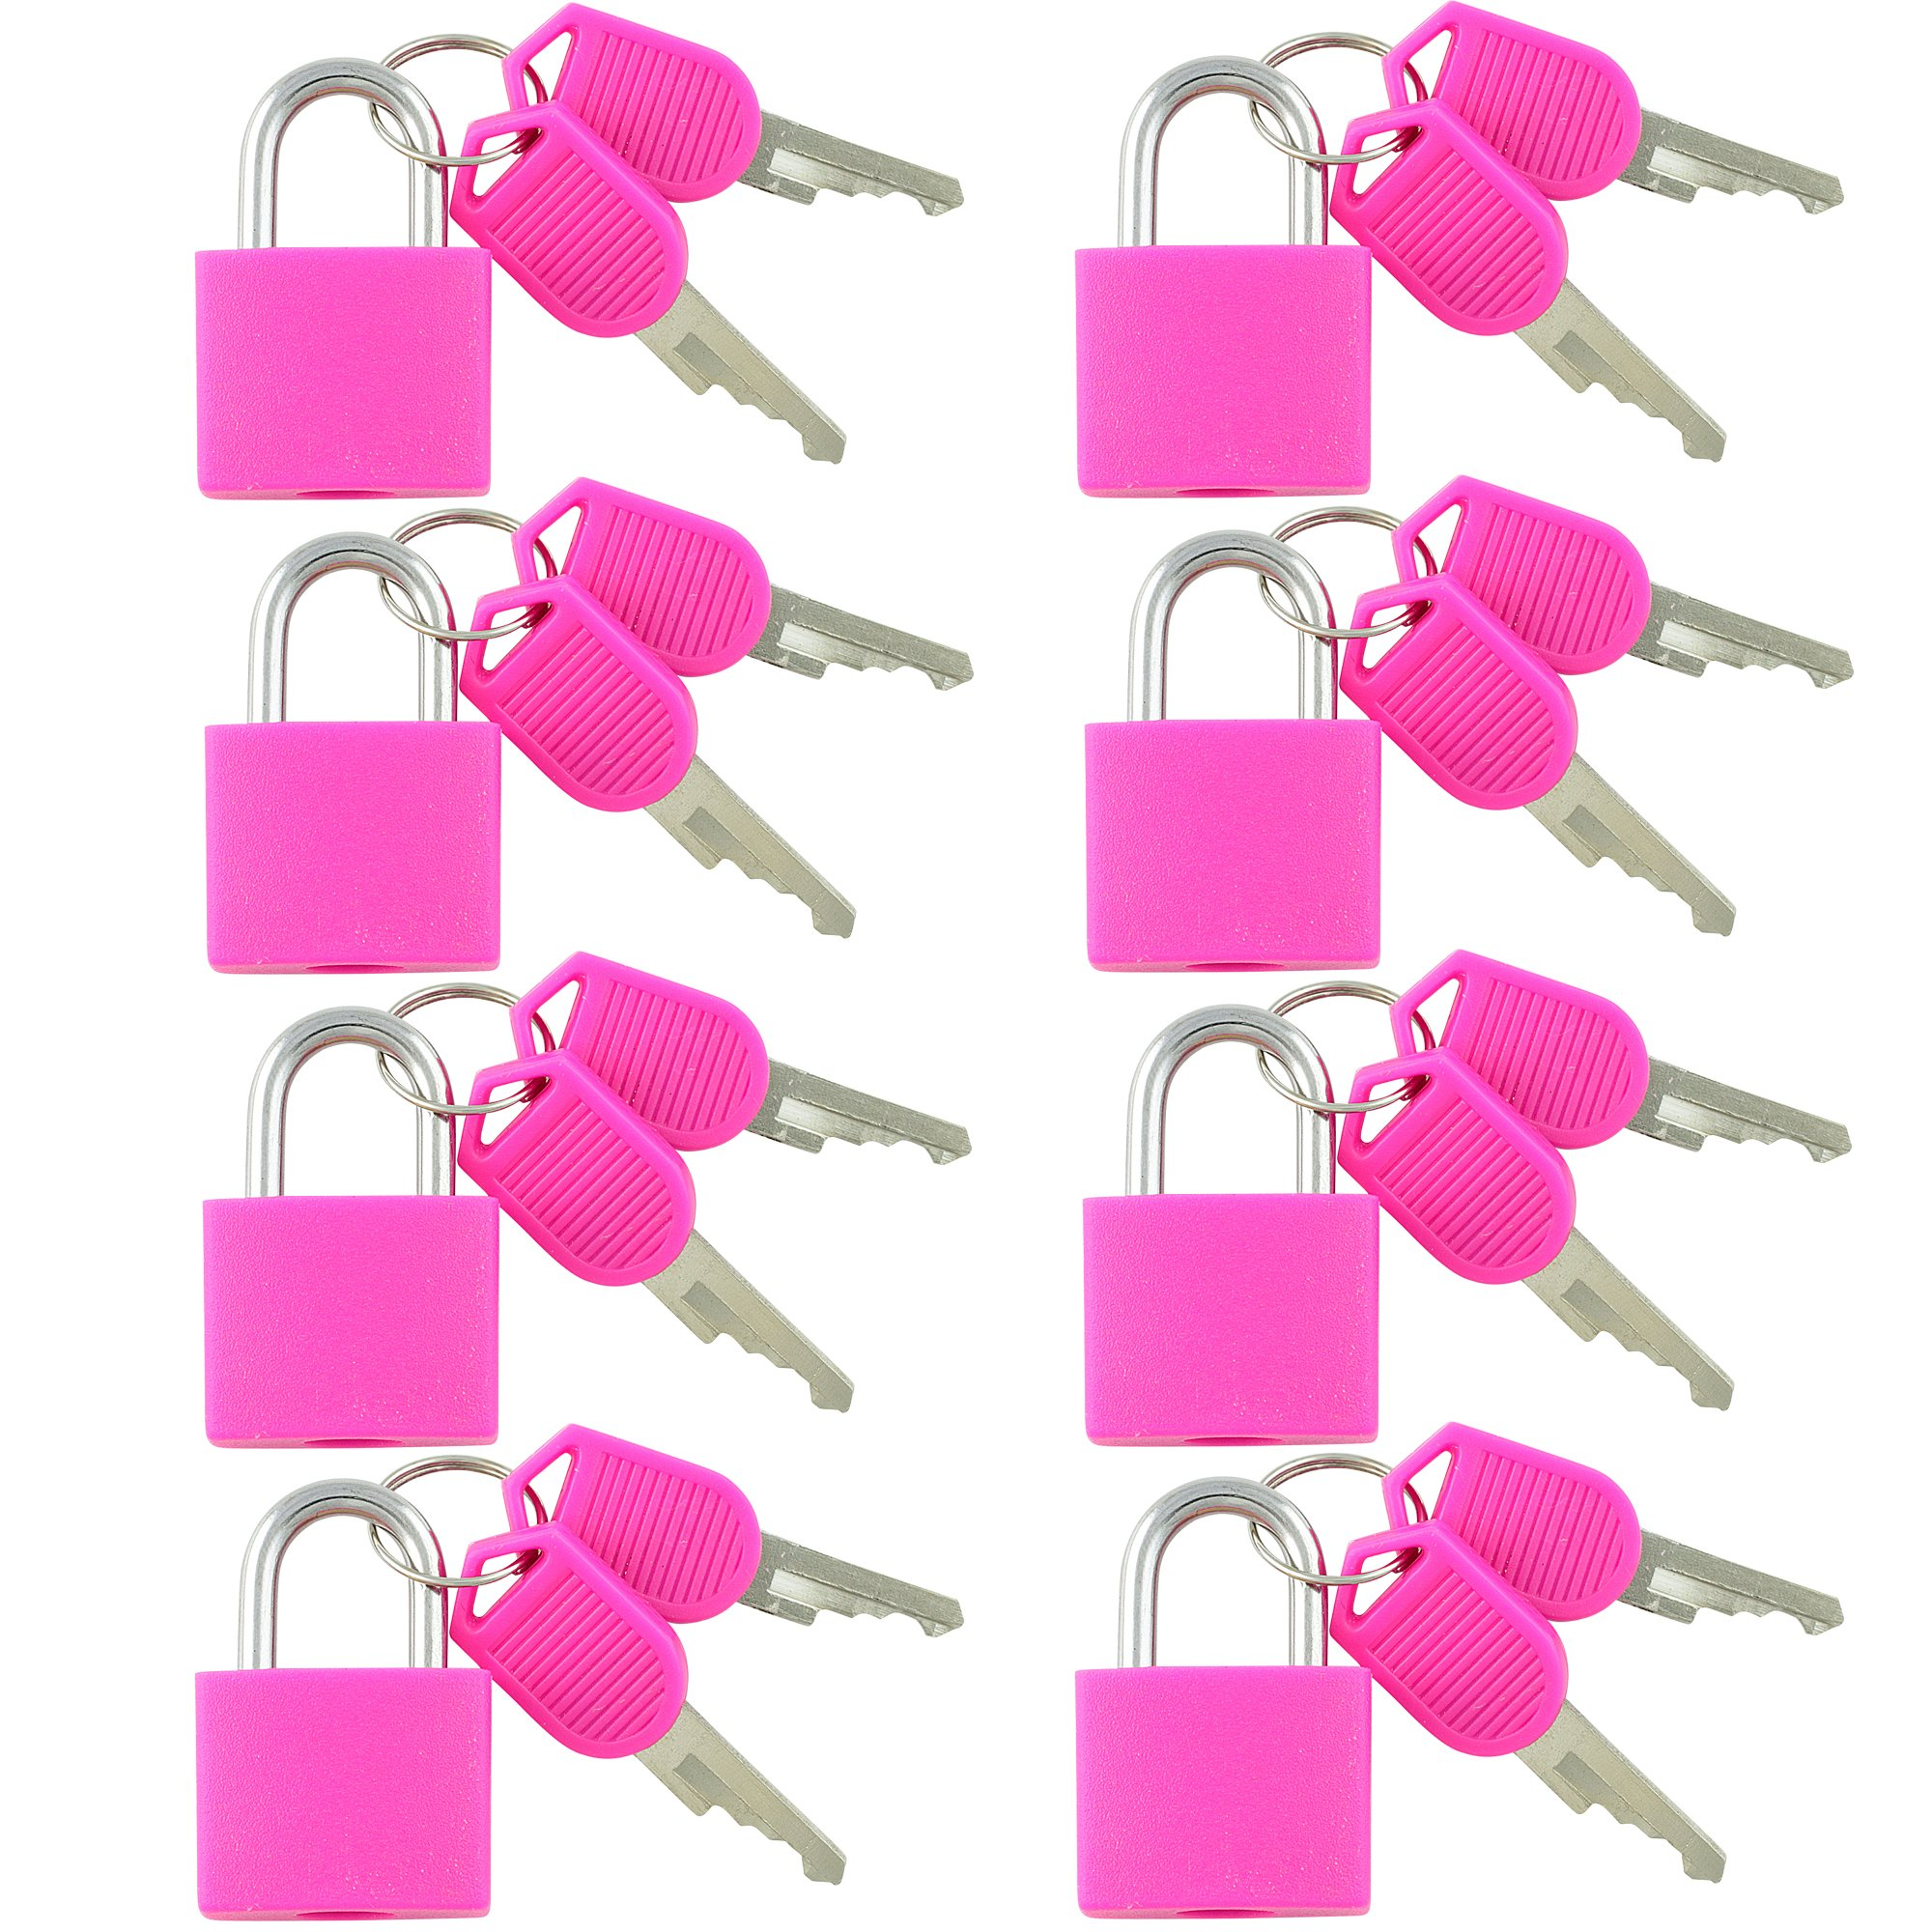 VIP Home Essentials - Small Mini Durable ABS Covered Solid Brass Body Individually Keyed Padlock - 8 Pack Lock Set (Pink)